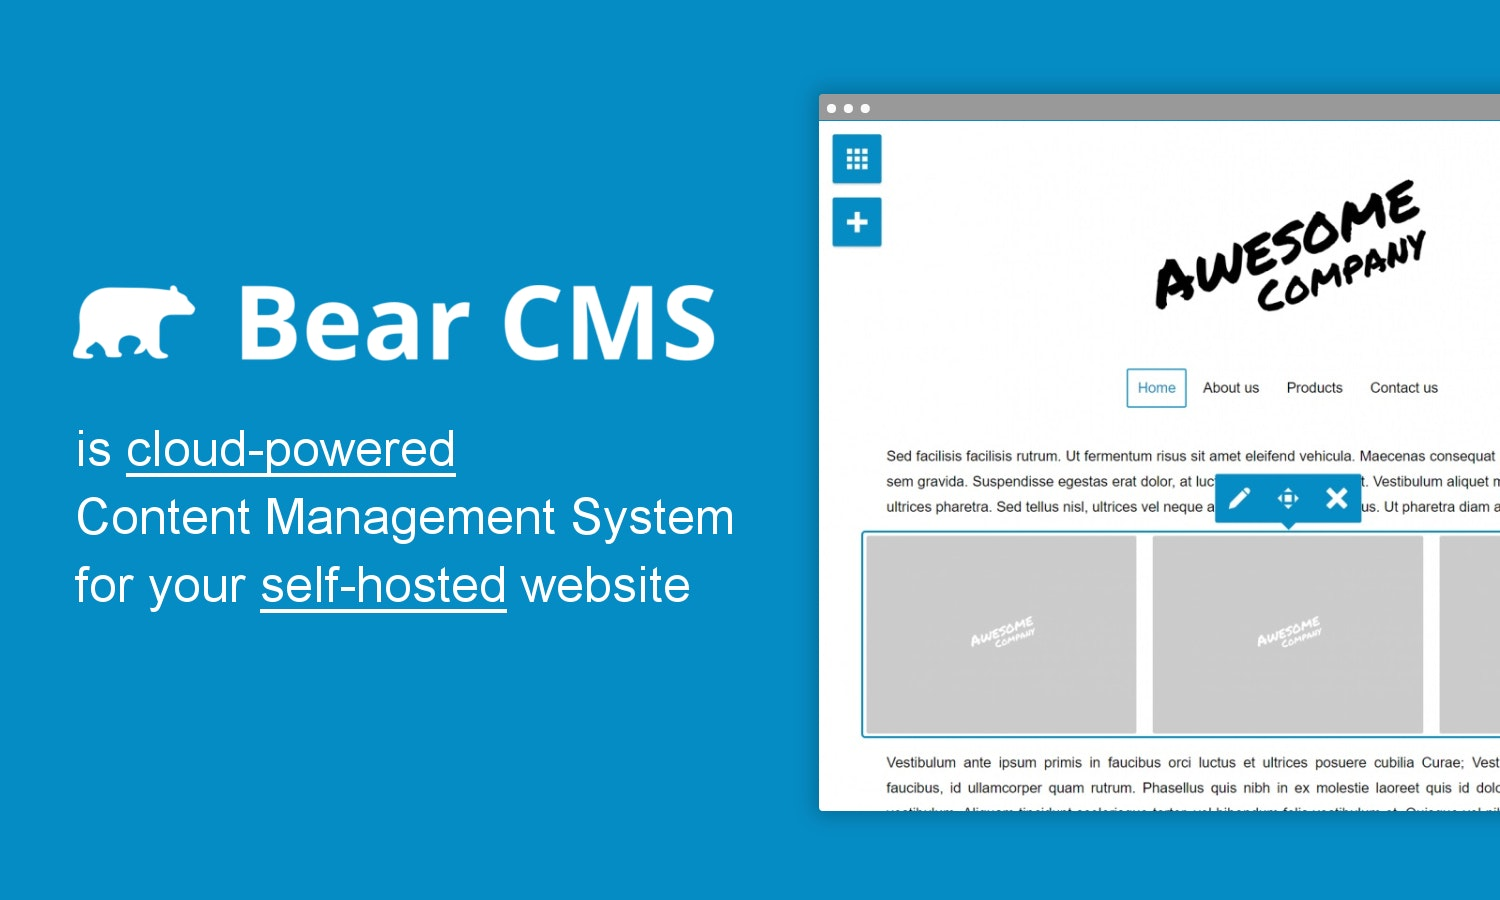 Bear CMS - CMS as a service for your self-hosted website